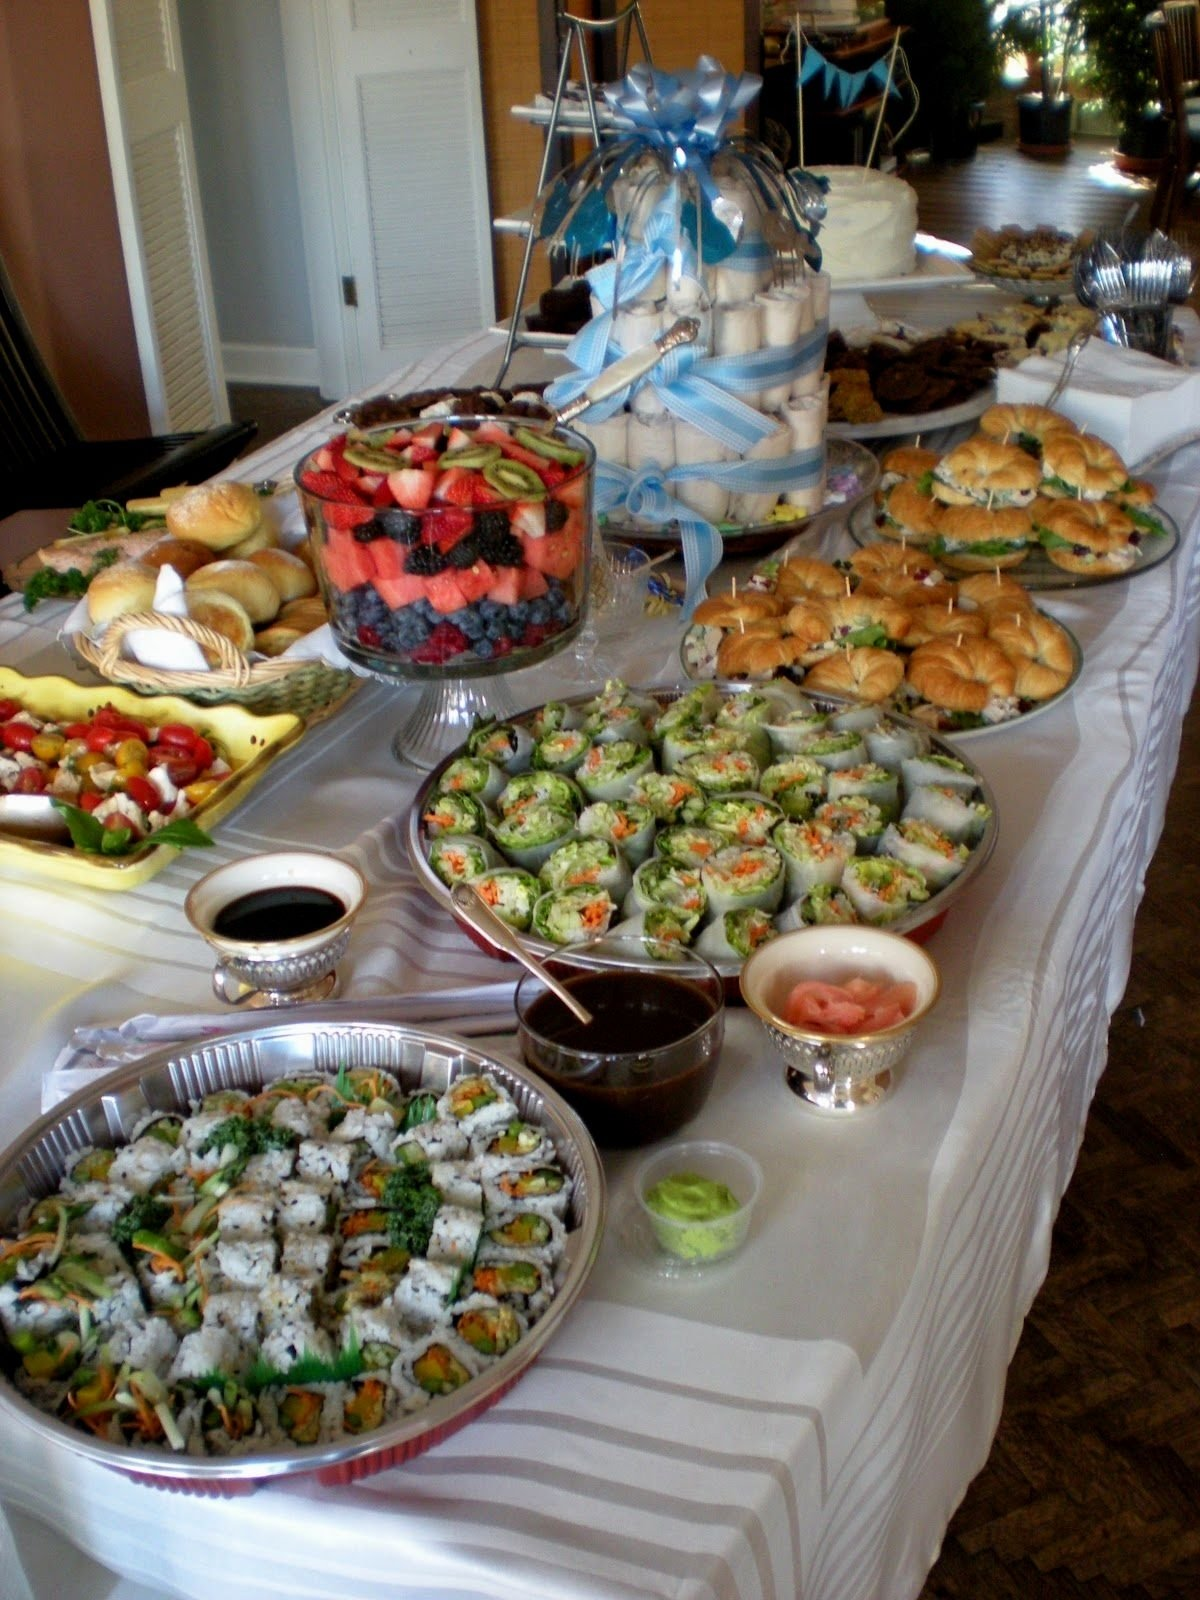 10 Stunning Baby Shower Food Ideas For Boy baby shower food ideas for boy pinterest finger cheap magnificent a 2020